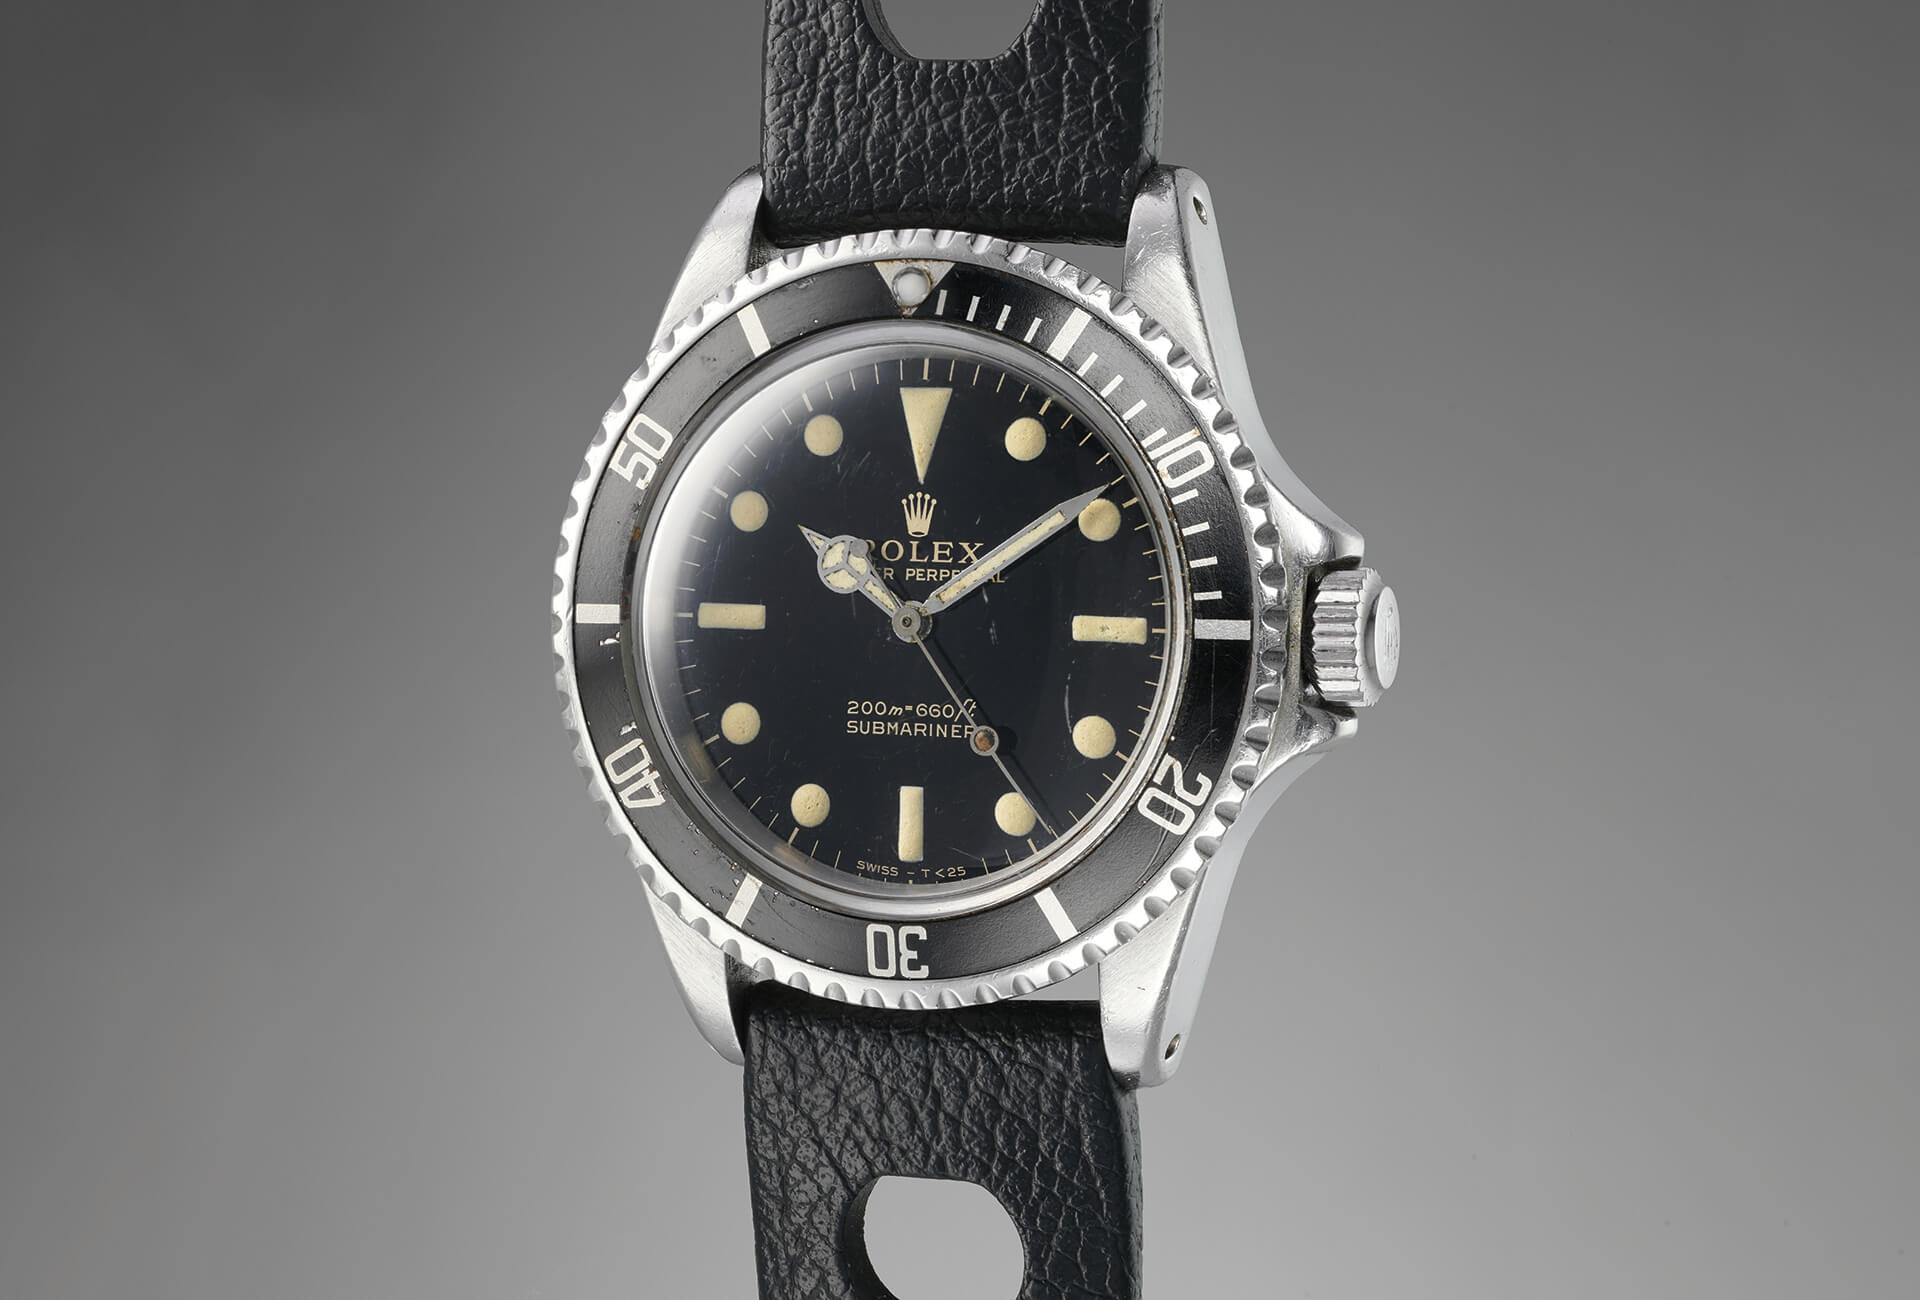 Rolex Submariner: Is the world's most recognizable timepiece